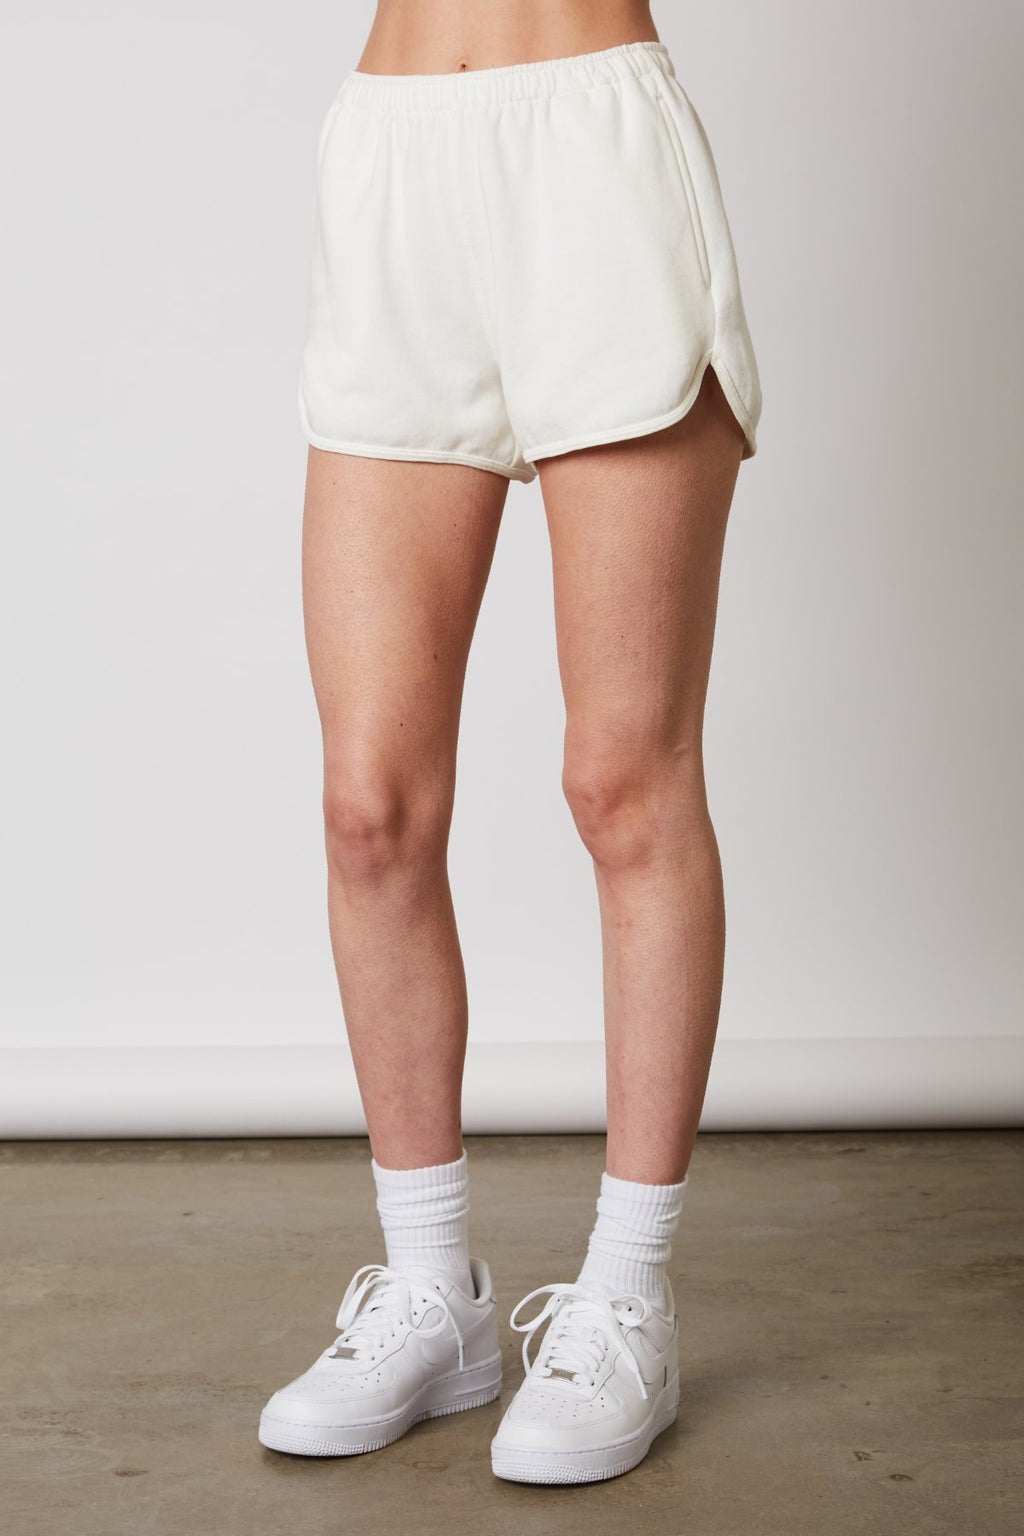 French Terry Shorts - Appelov